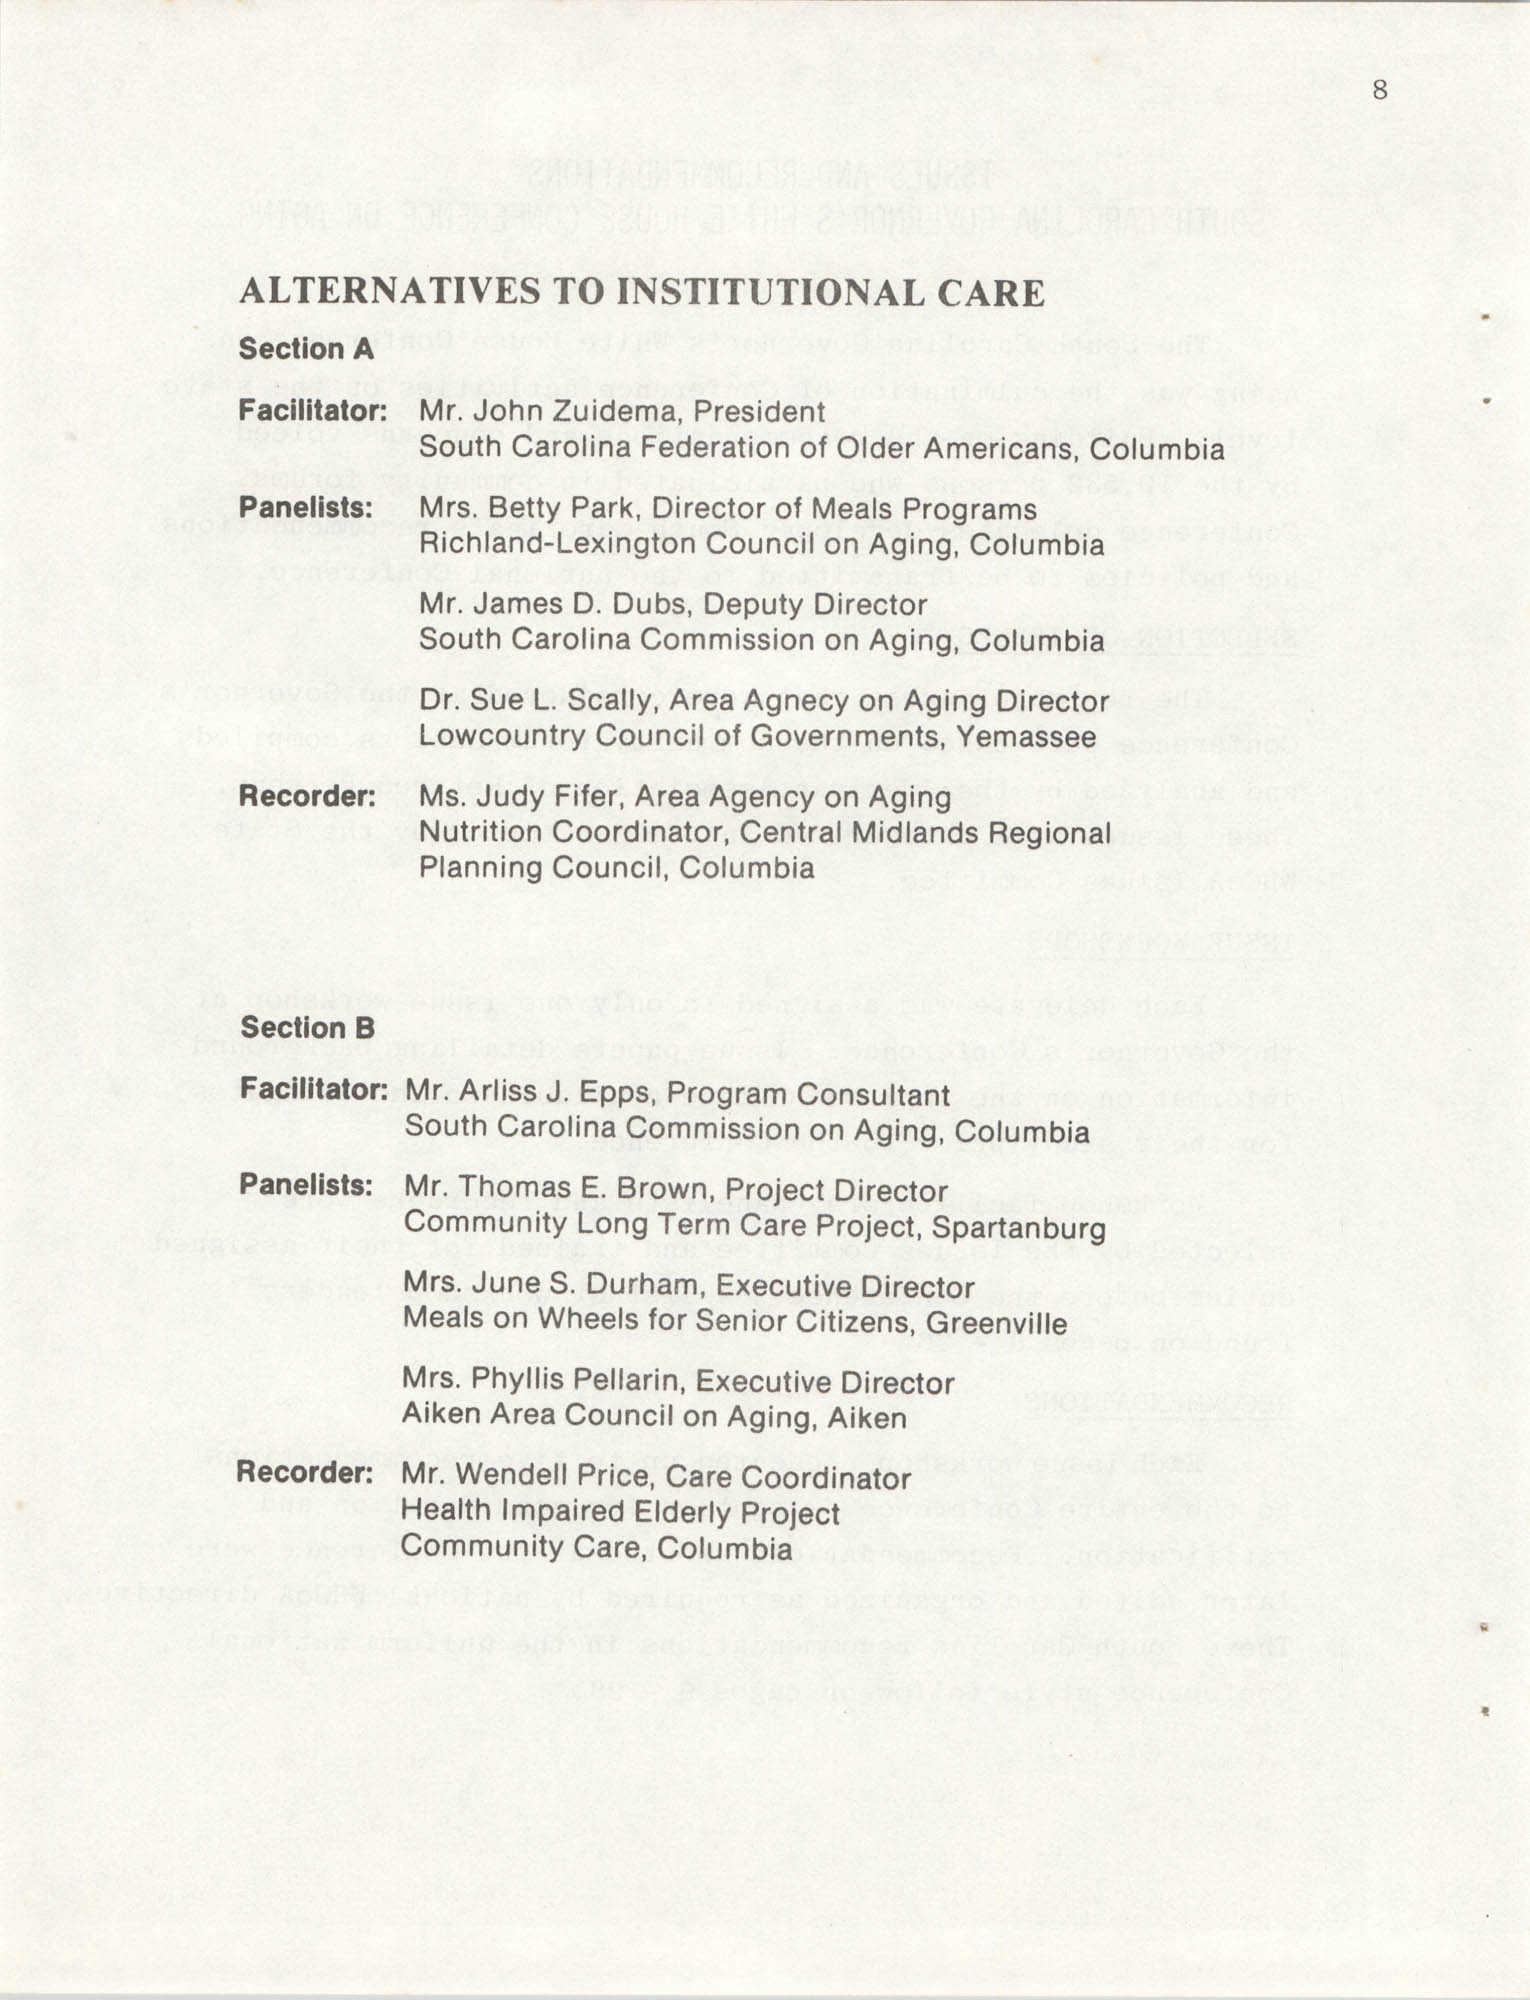 South Carolina Governor's White House Conference on Aging Proceedings, 1981, Page 8